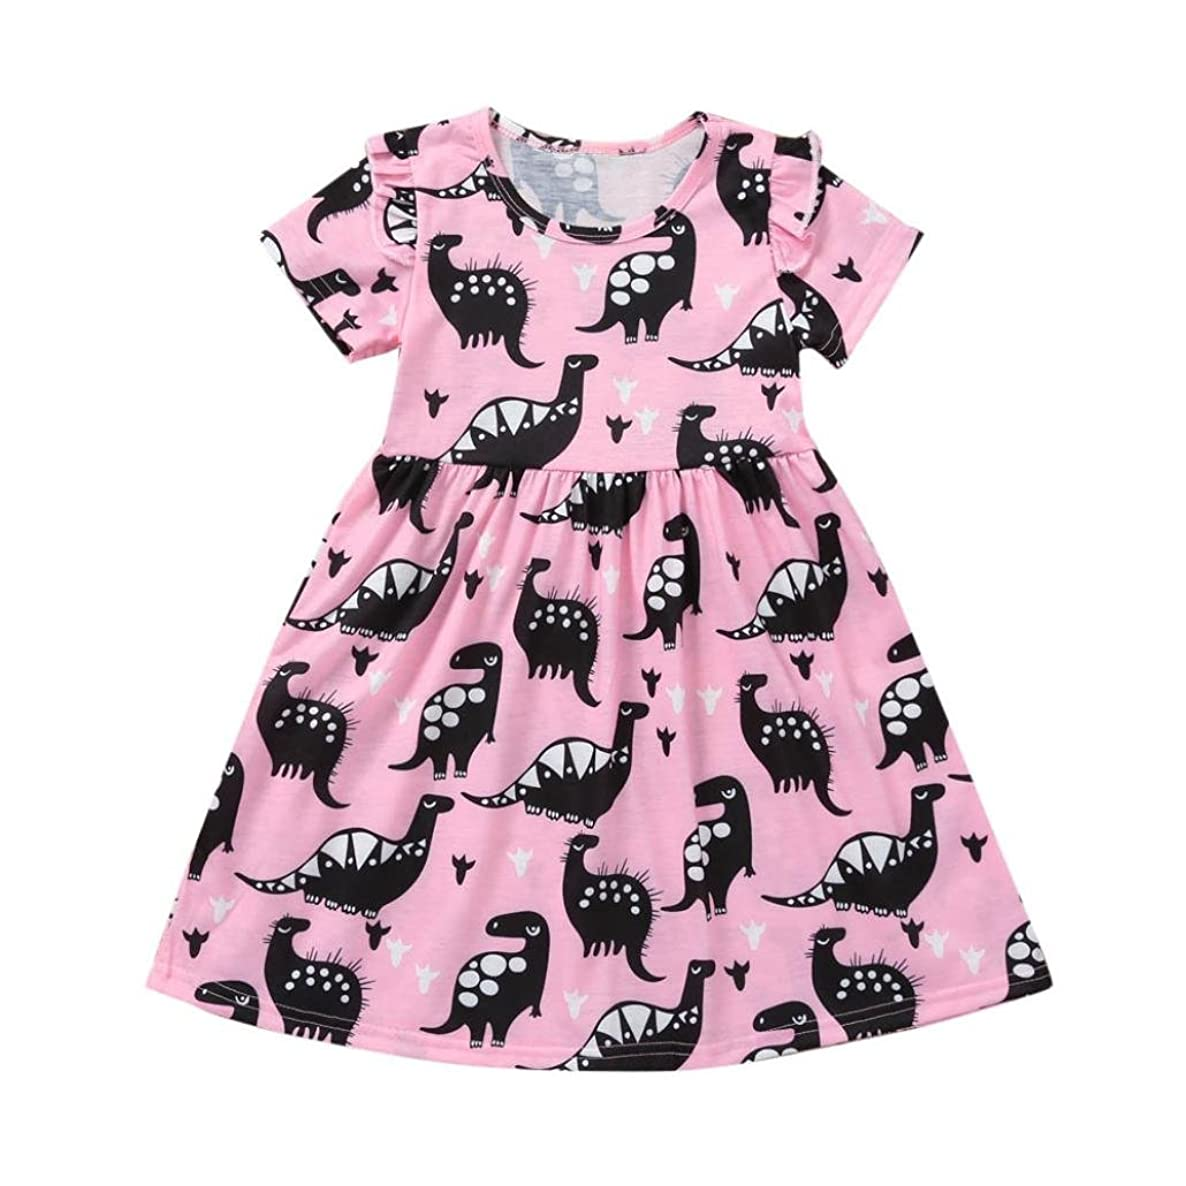 Boomboom Baby Girl Short Sleeve Dinosaur Printing Party Clothes Dress